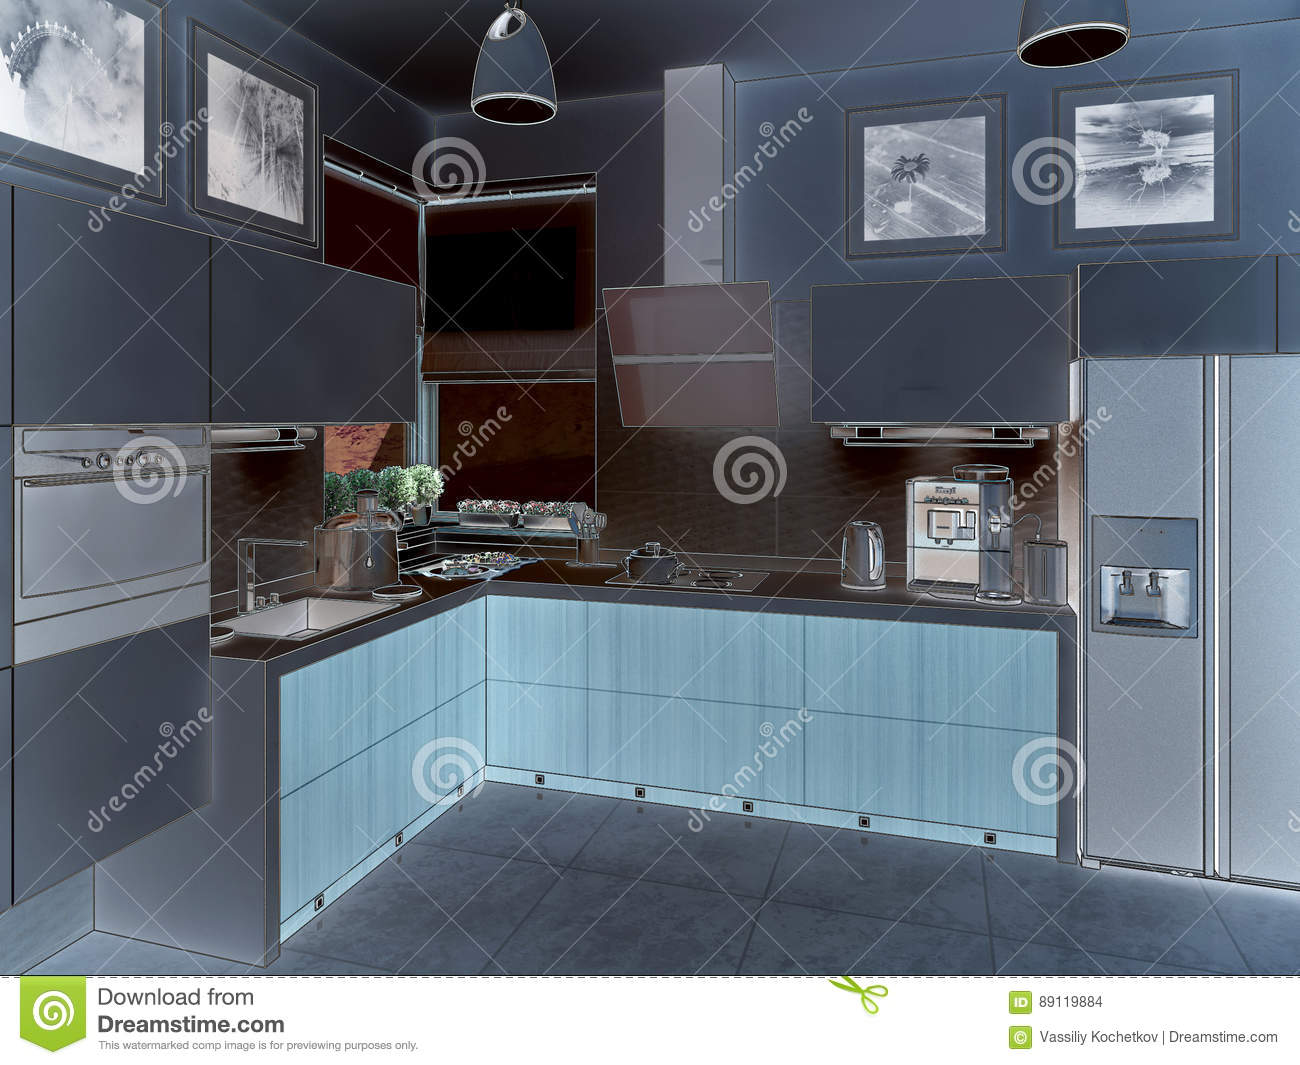 Kitchen Interior. 3d Illustration, Render. Stock Photo - Image of ...